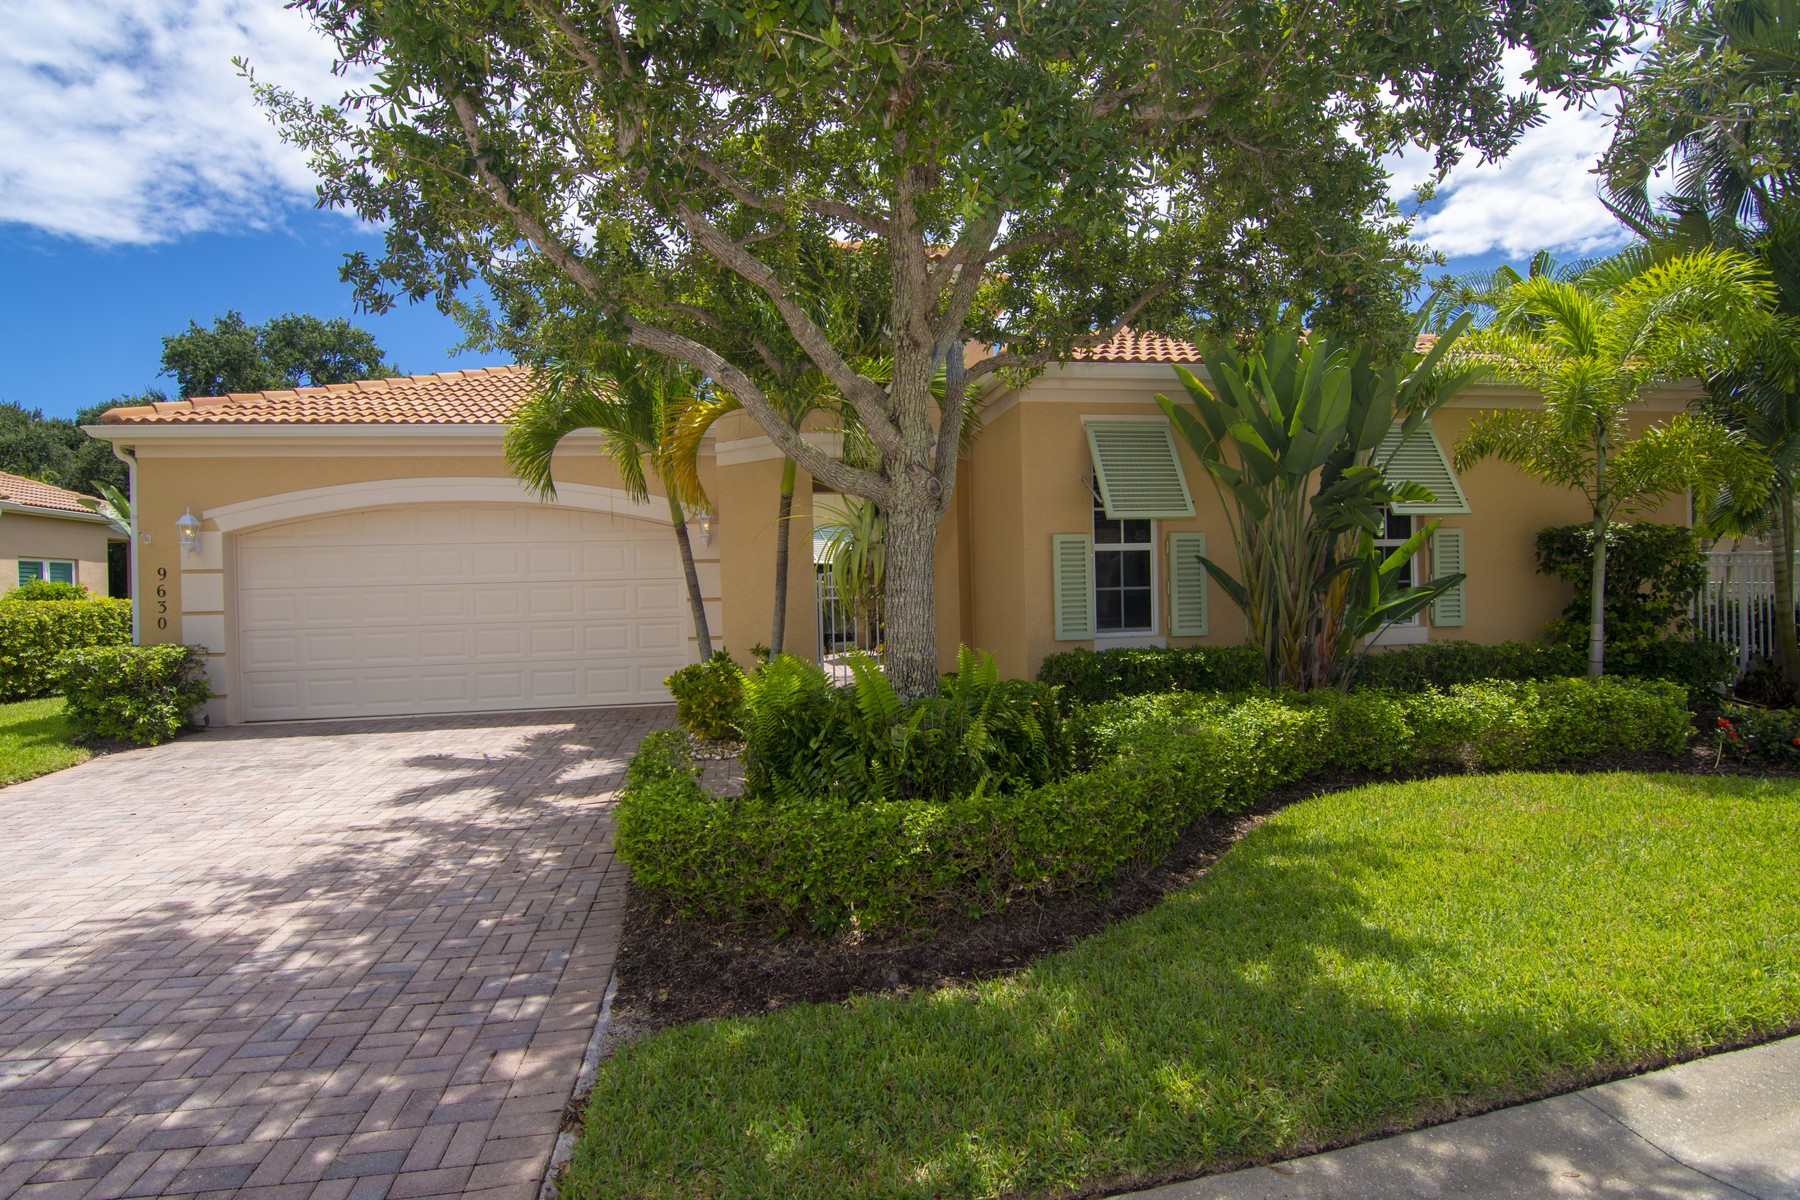 Property for Sale at Courtyard Pool Home with Guest Cabana 9630 E Maiden Court Vero Beach, Florida 32963 United States